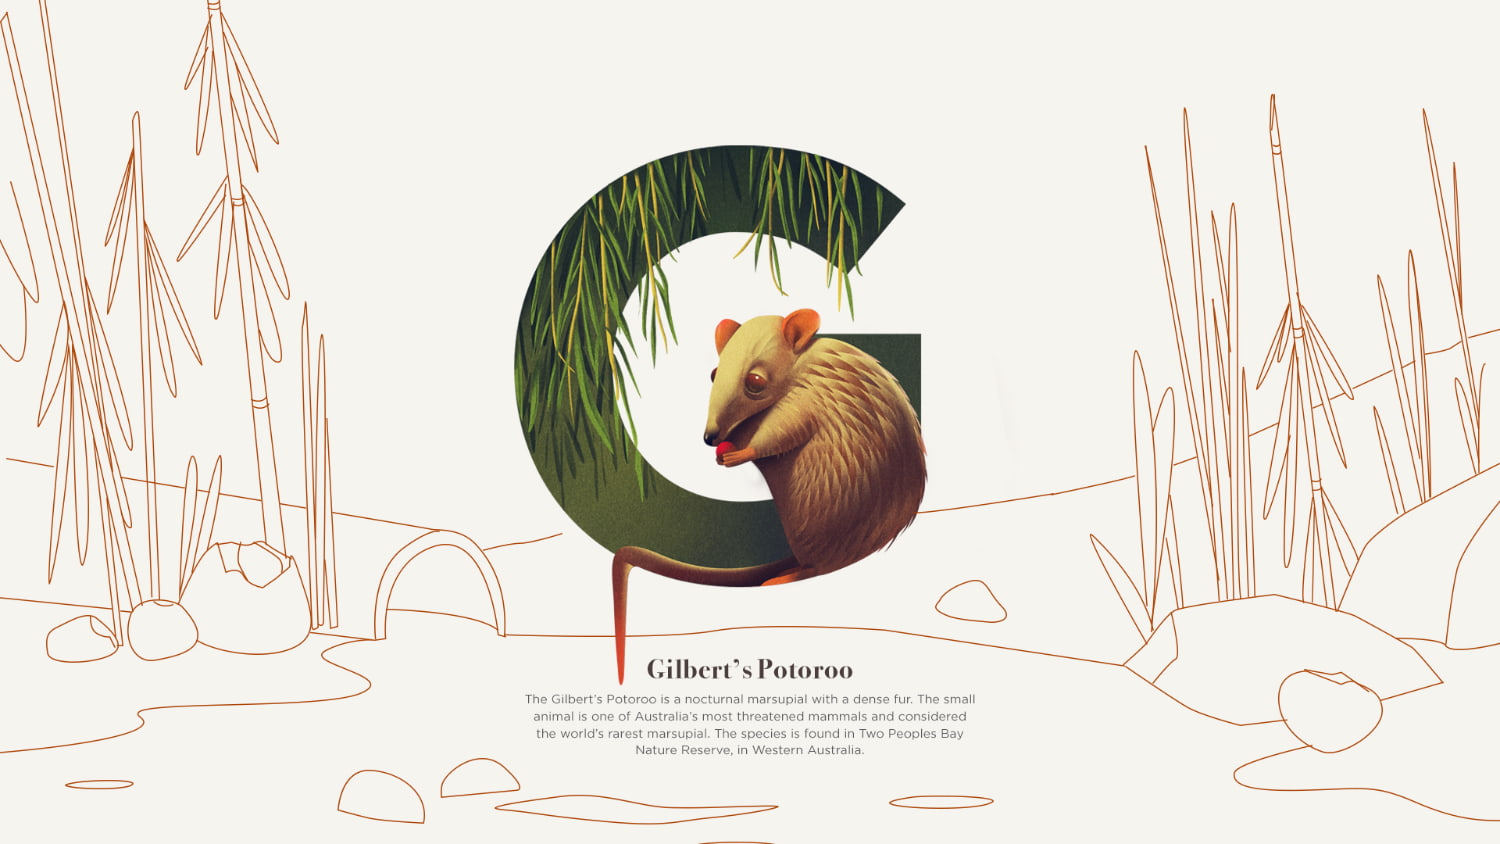 G is for Gilberts Potoroo